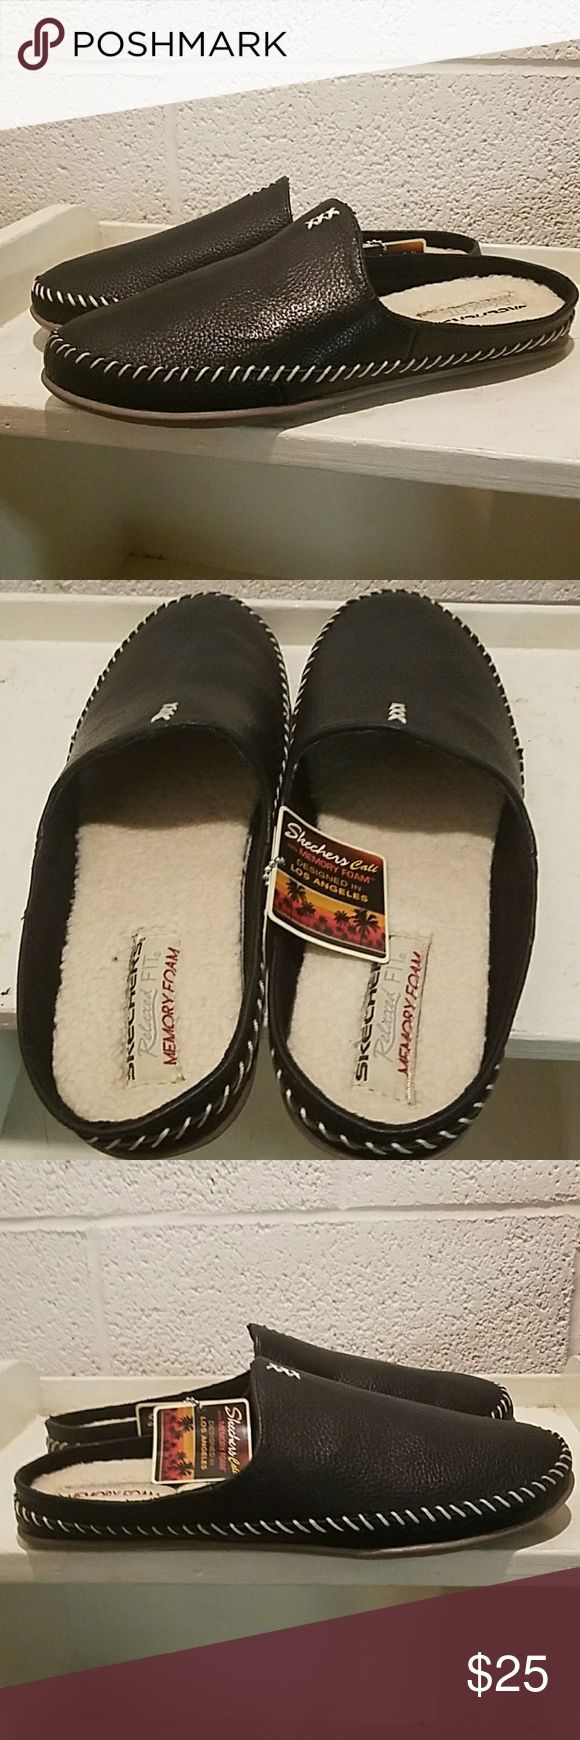 New Skechers Beach Bonfire Slippers - Size 9 New Skechers Beach Bonfire Warm Wonder Slippers - Size 9 - Black. Faux- fur lined, memory foam padded footed, make for a very comfy slipper. Sole of shoe is designed so they can be worn indoor or outdoor. Skechers Shoes Slippers